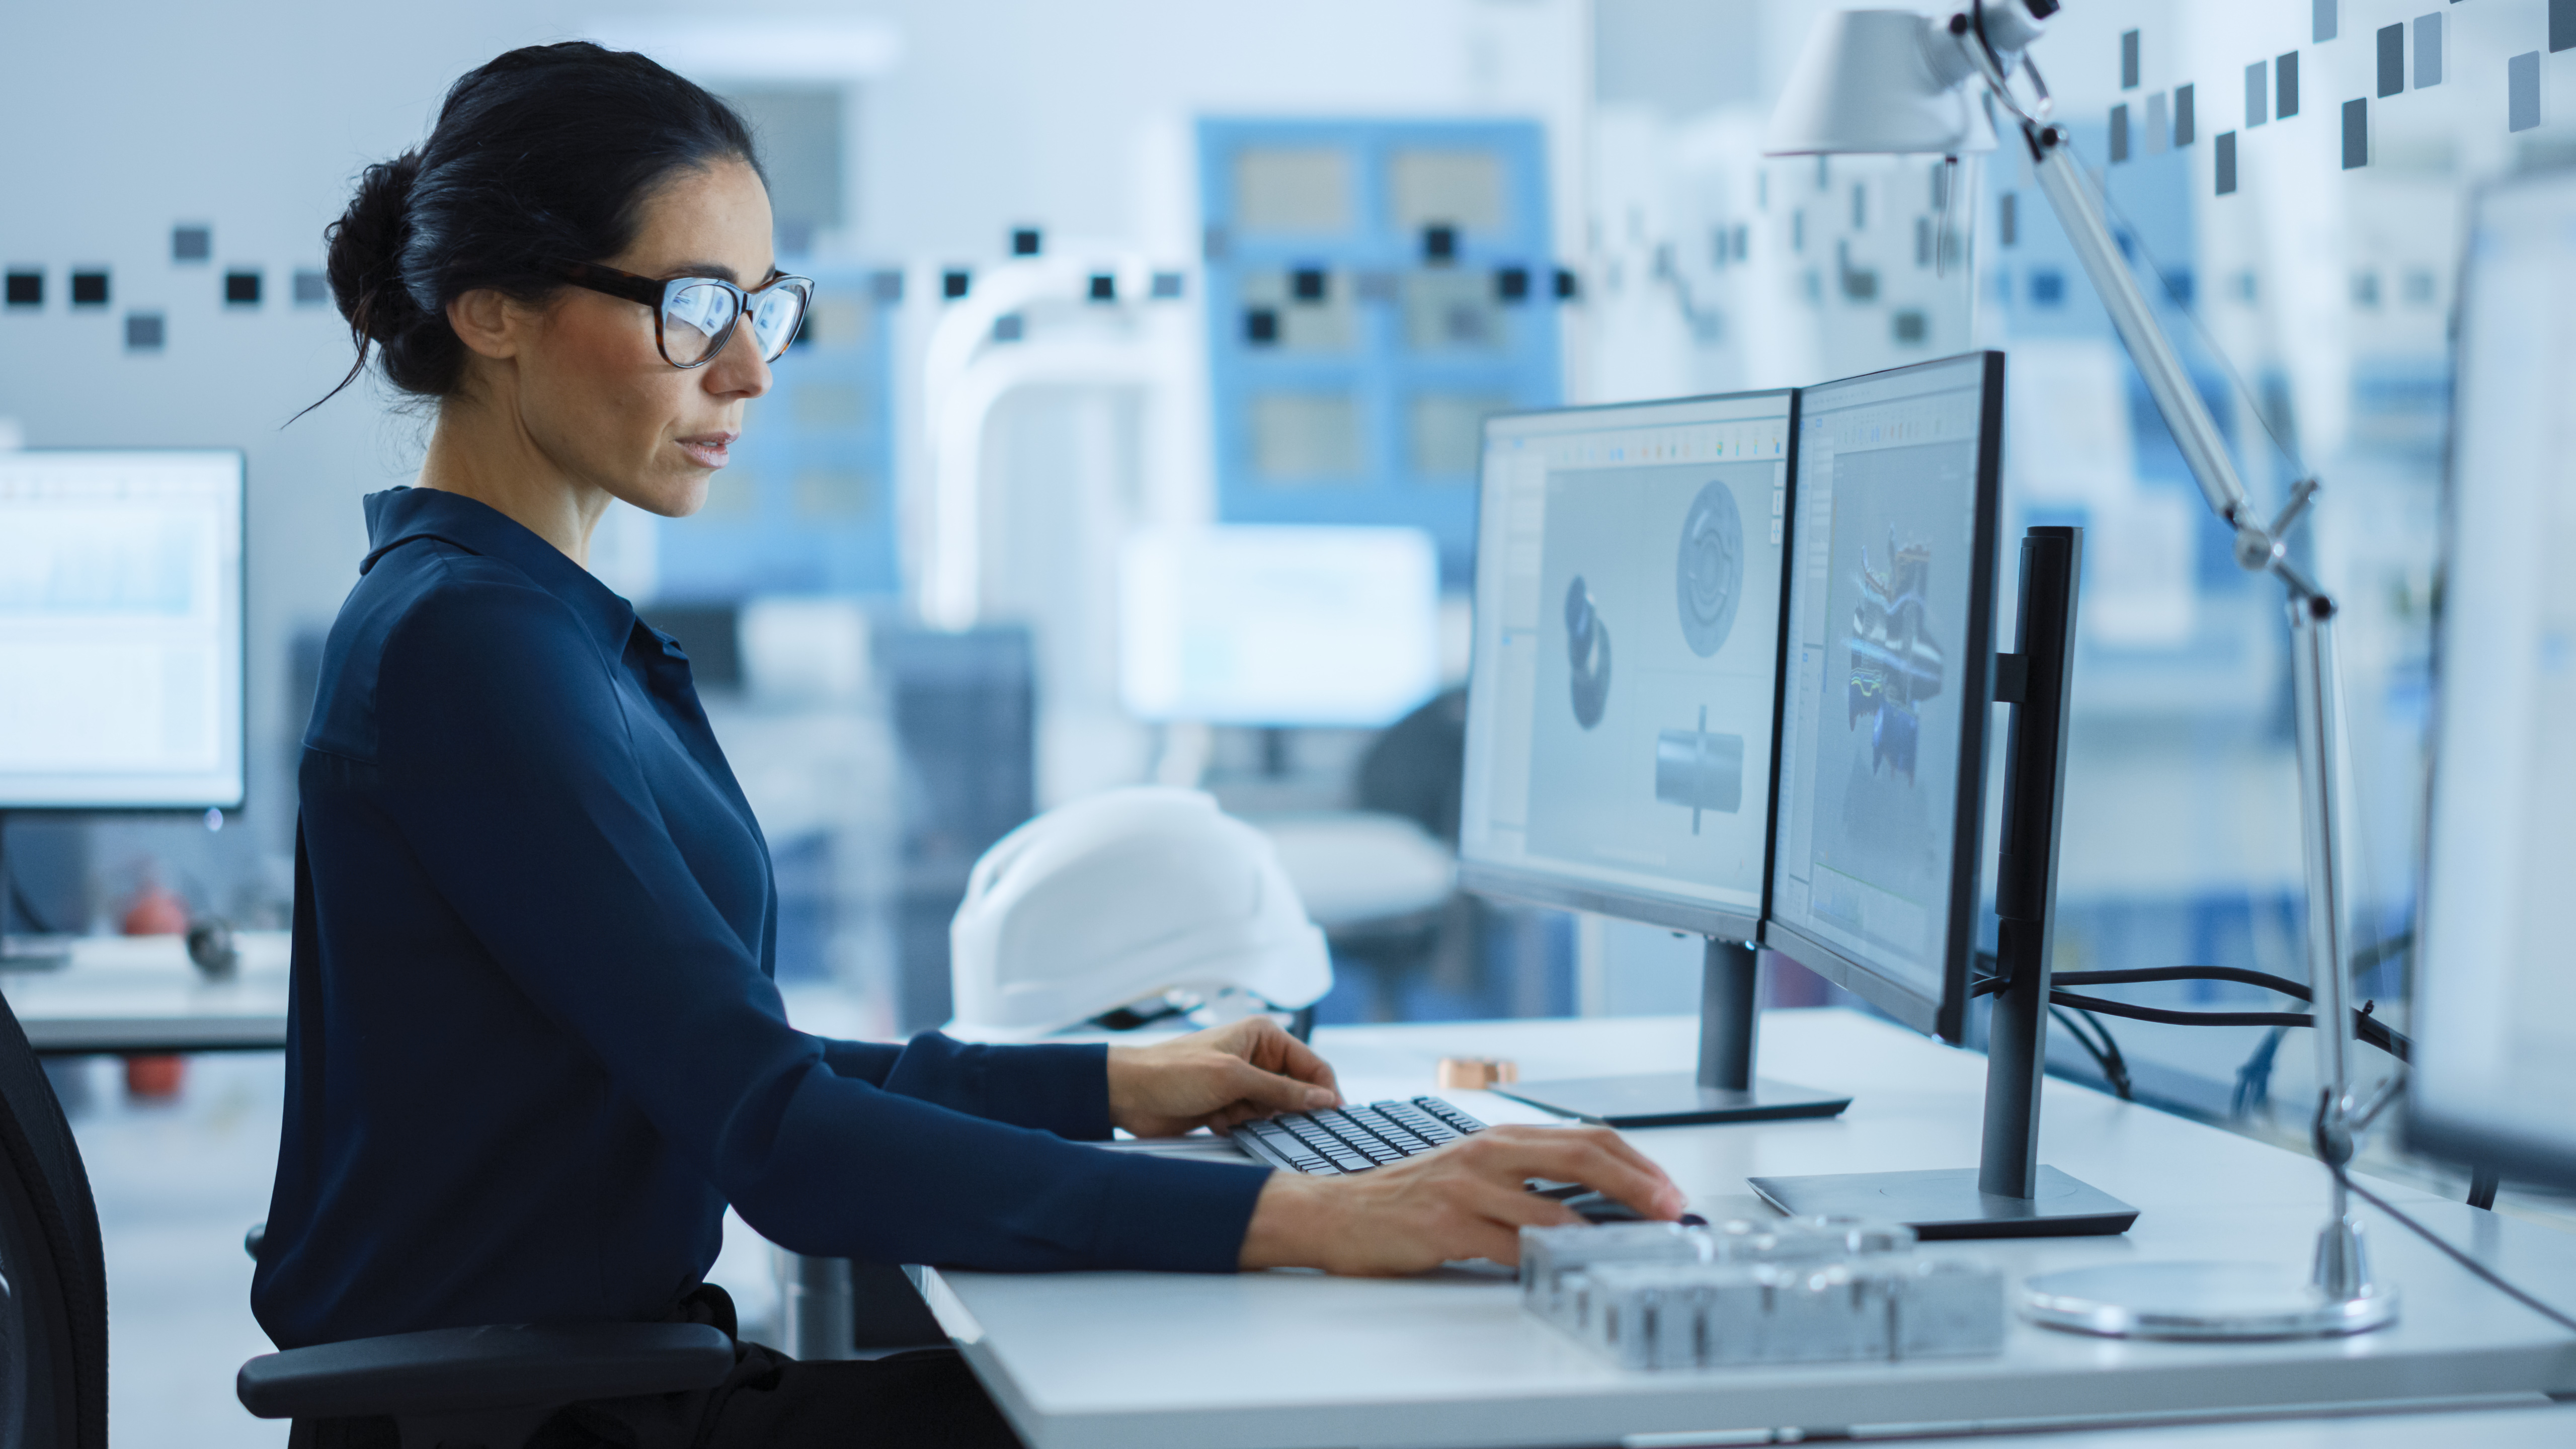 Woman sitting at desk with two monitors